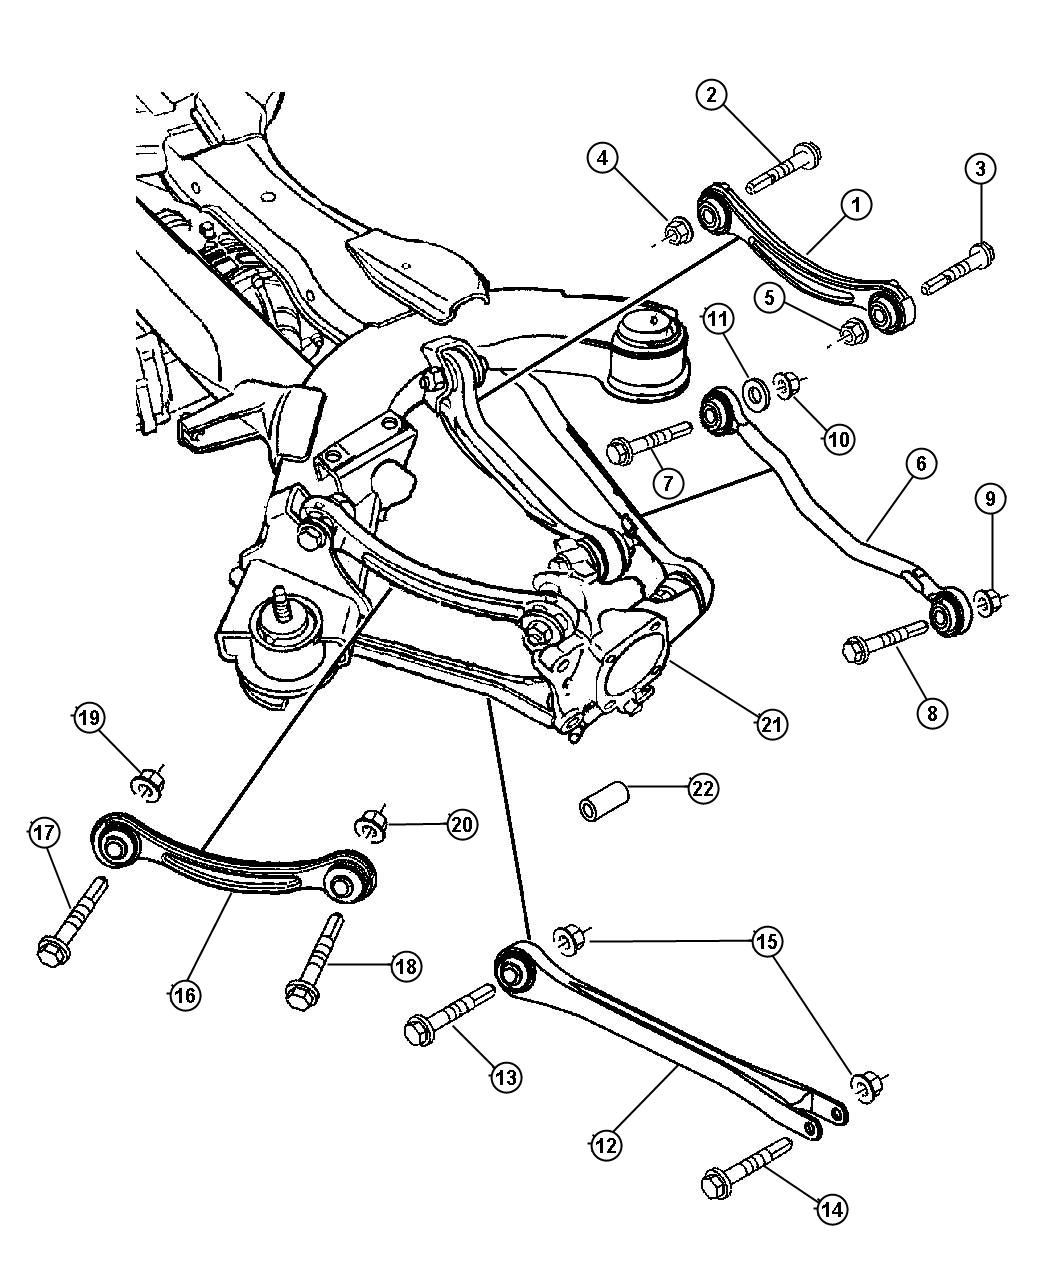 2004 chrysler pacifica rear suspension diagram